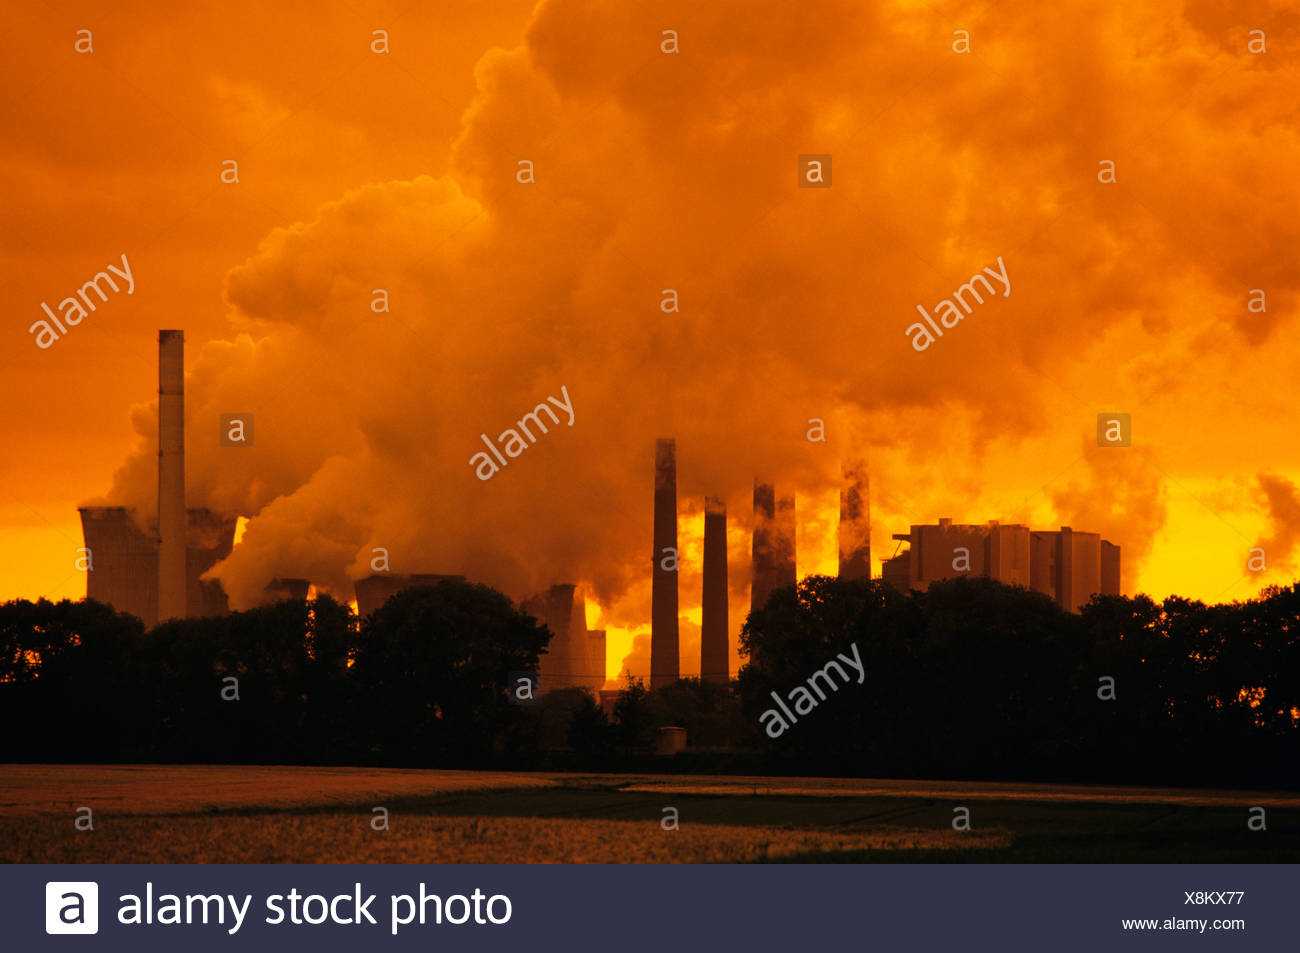 Brown coal power plant in evening light, emissions, North Rhine-Westphalia, Germany, Europe - Stock Image